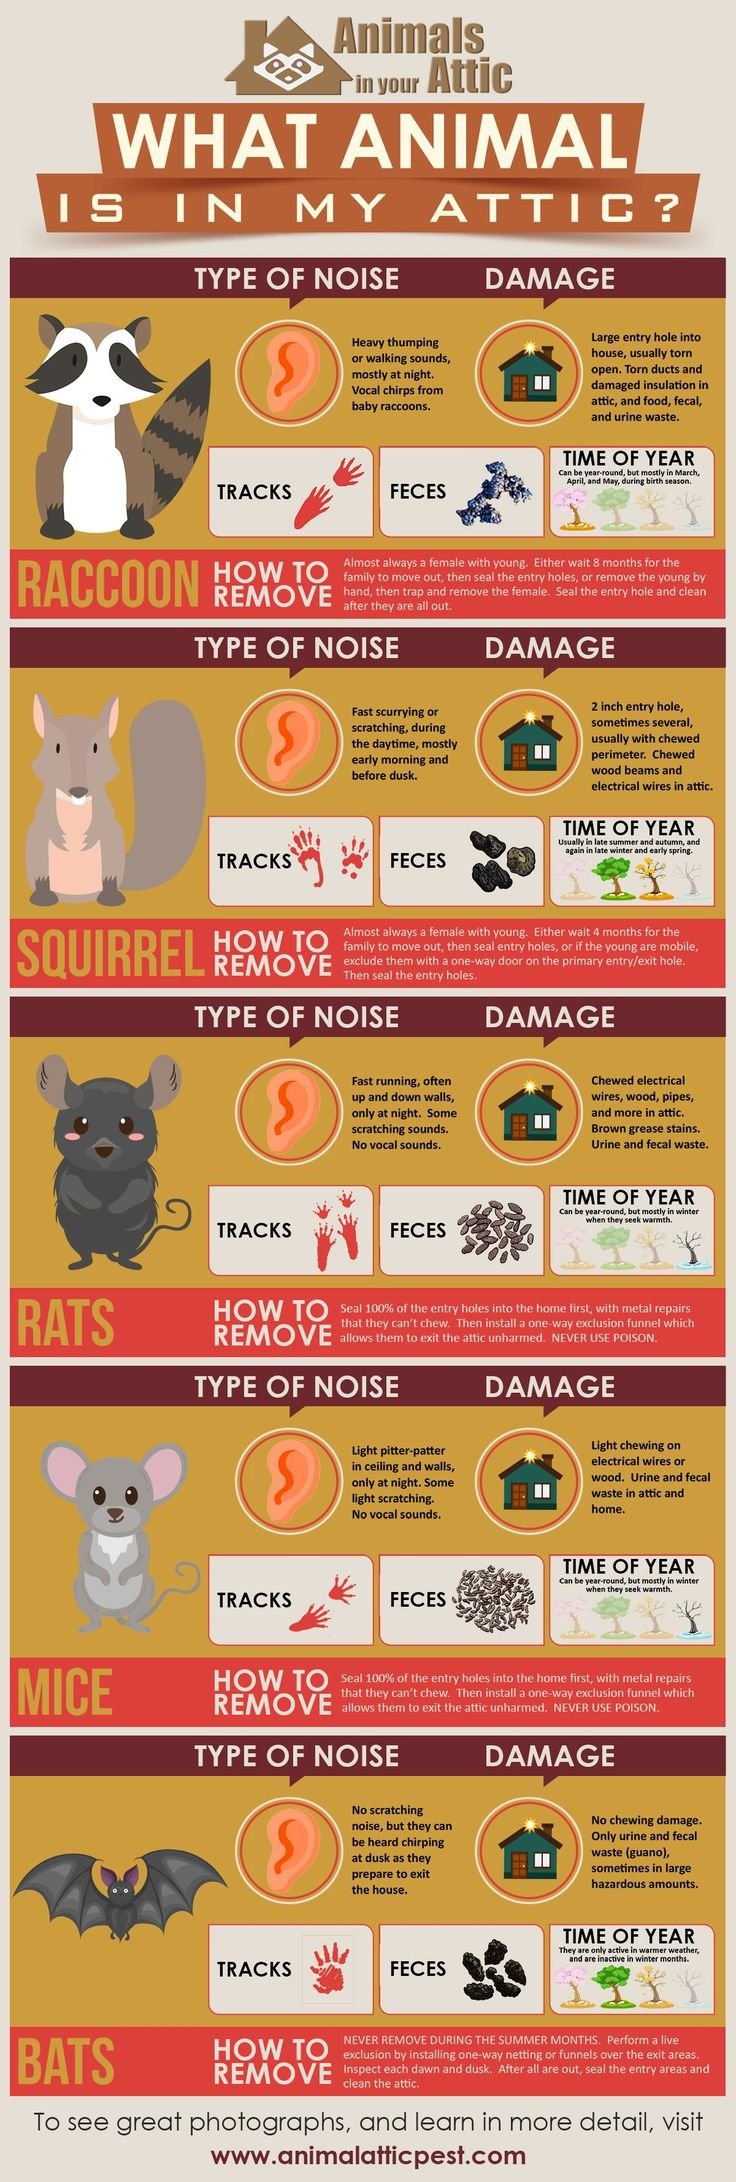 Find out which animal is in your attic infographic